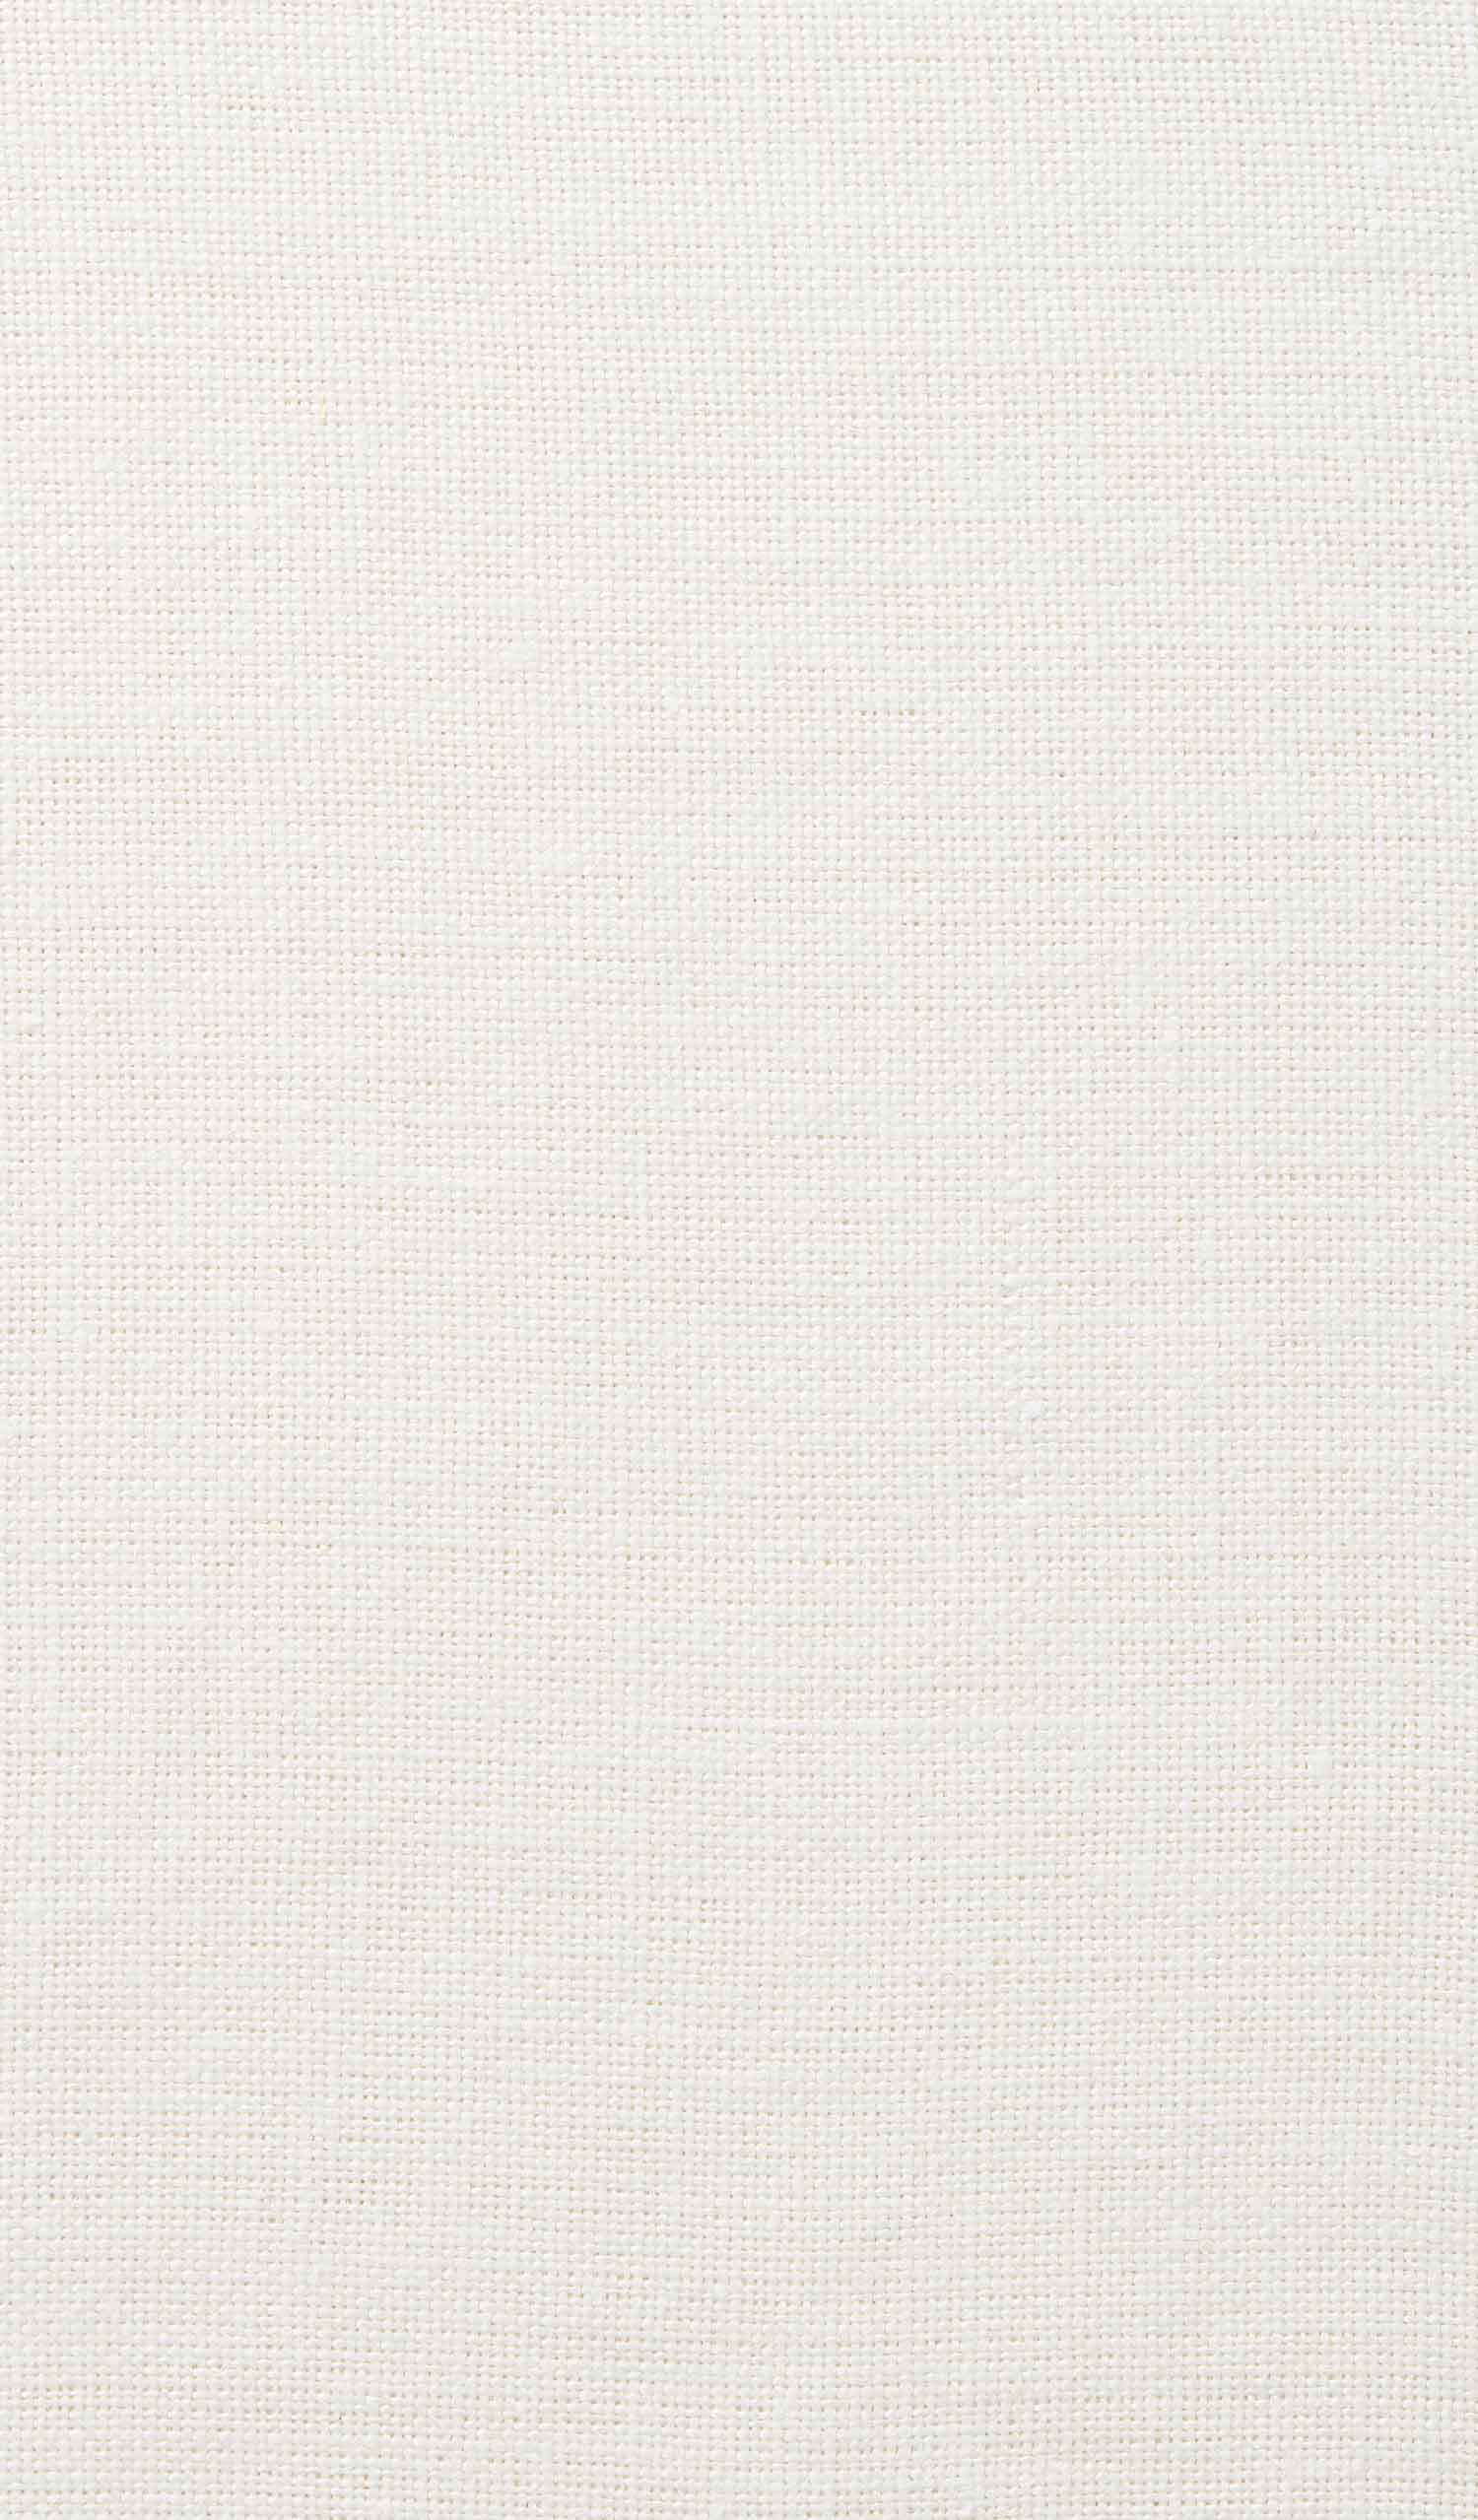 swatch of linen casual optic white